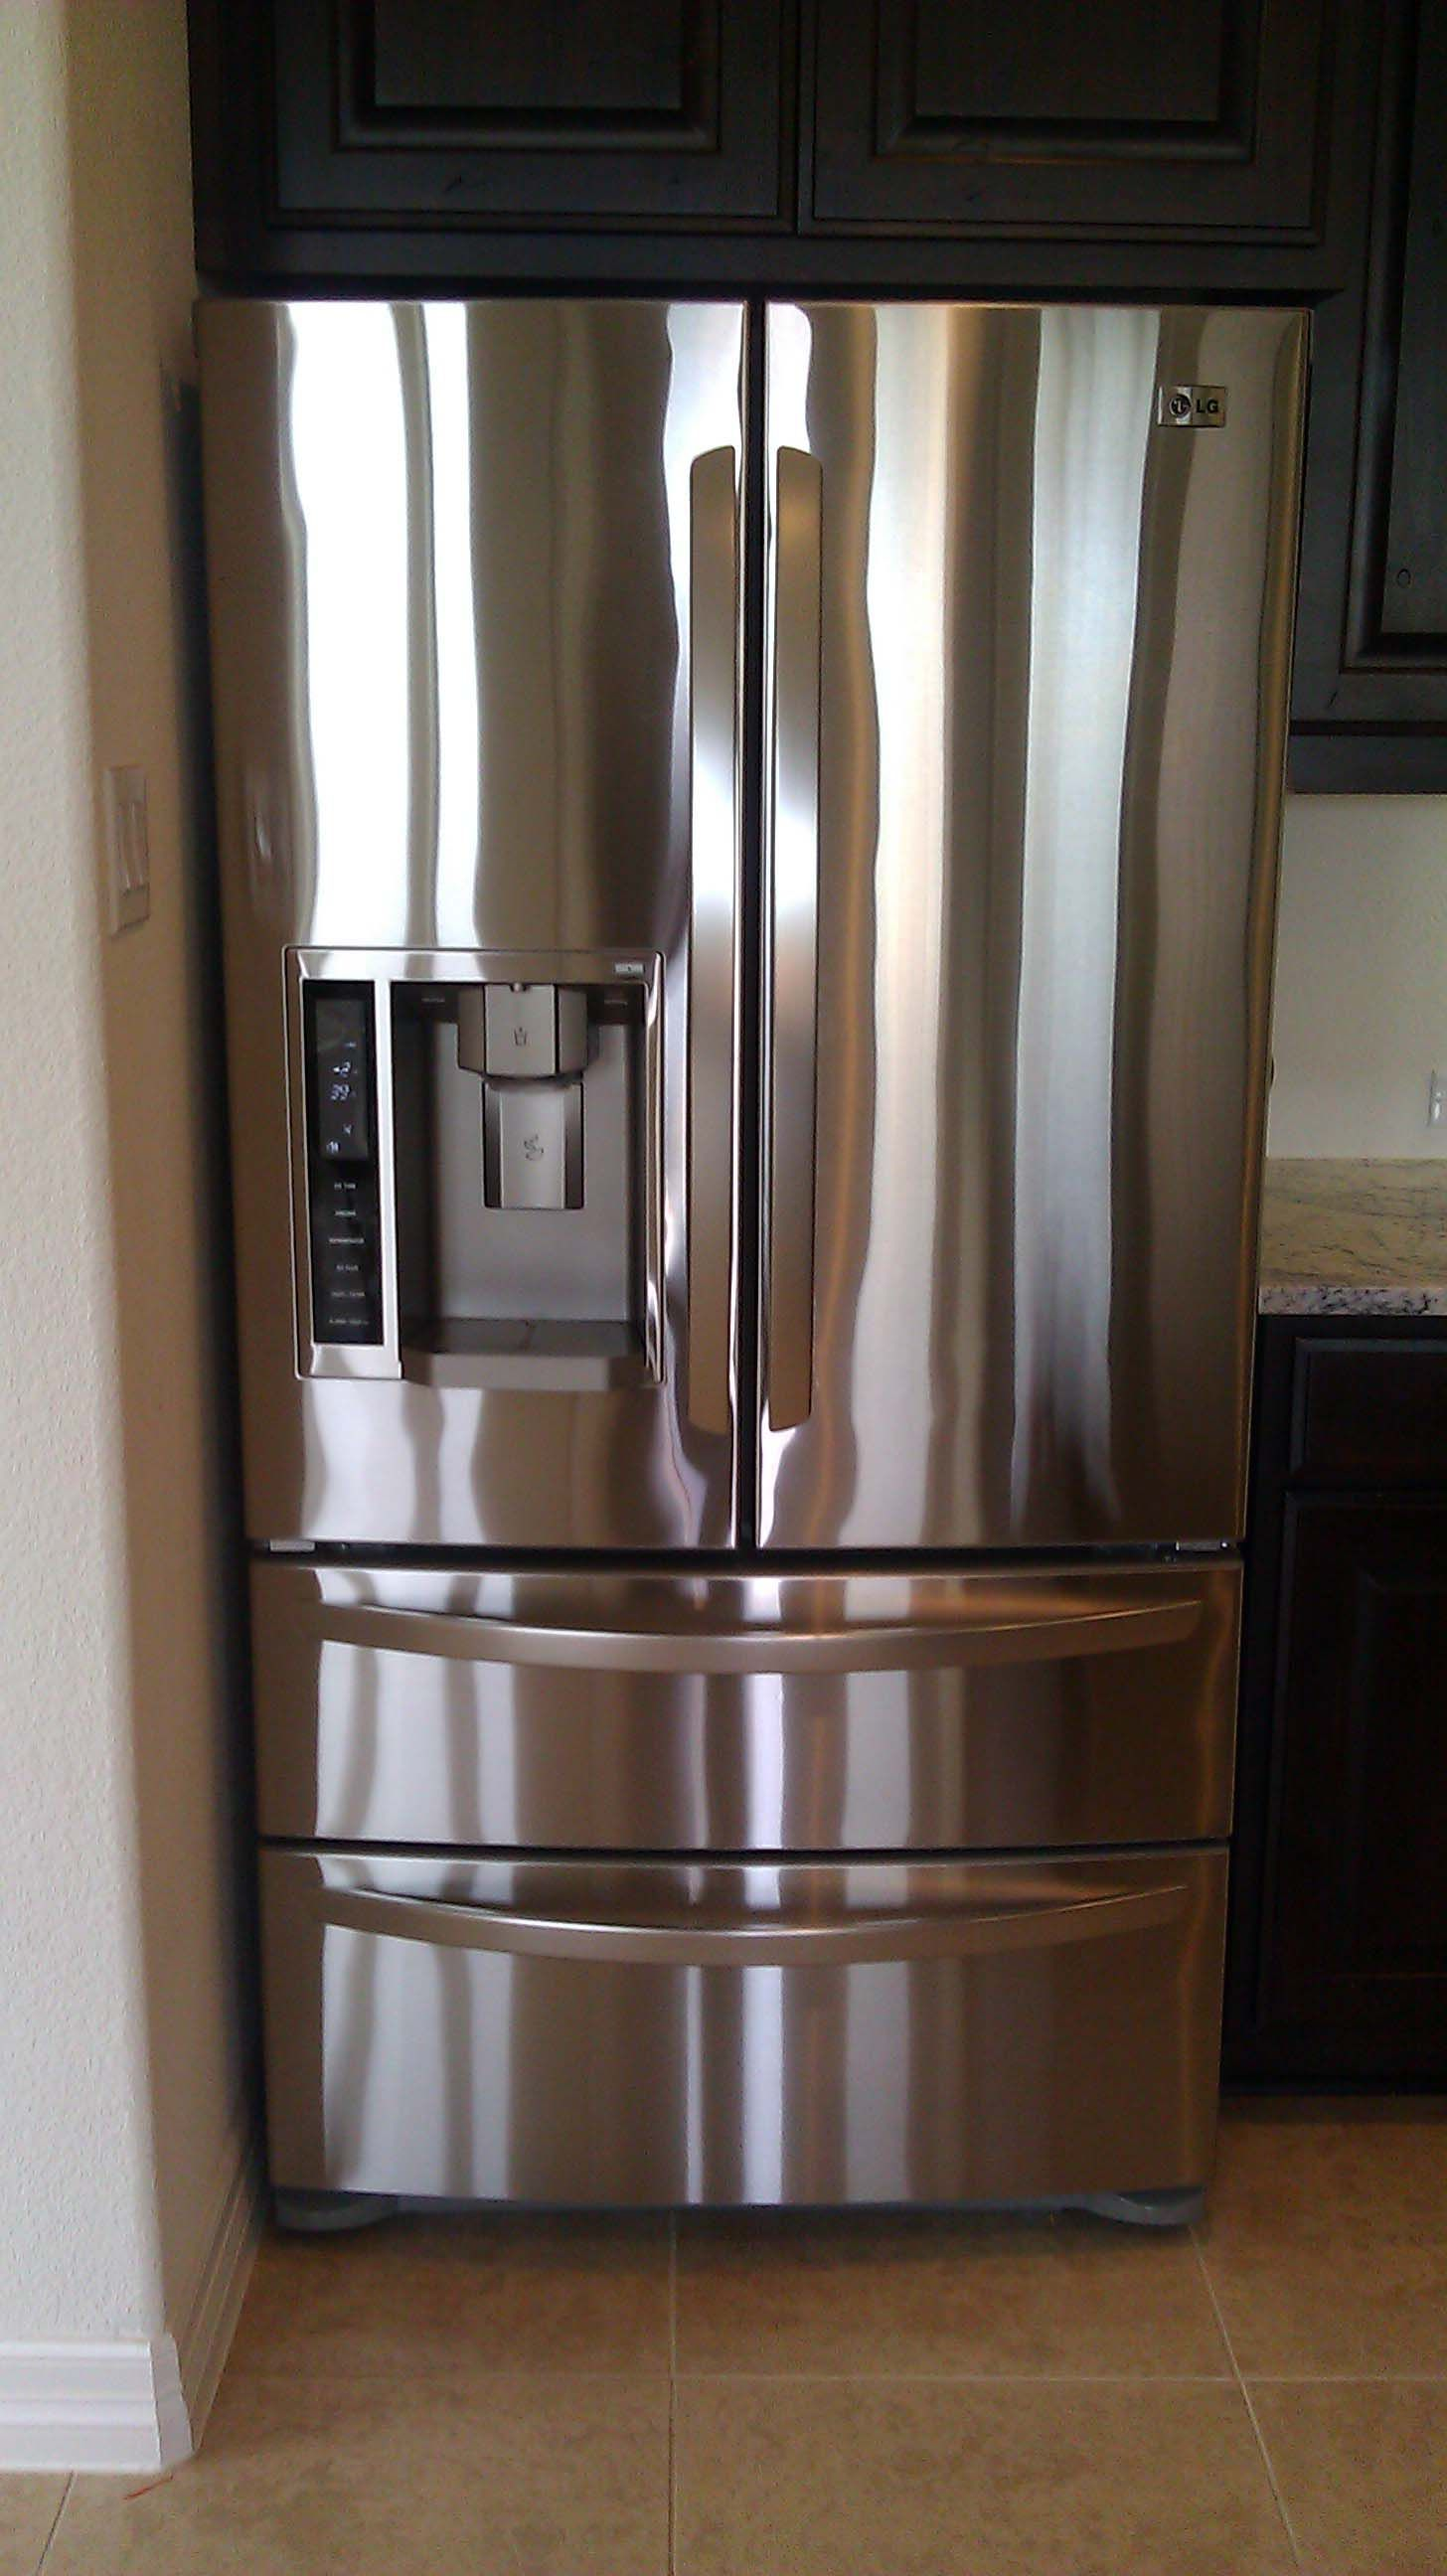 How to really clean stainless steel